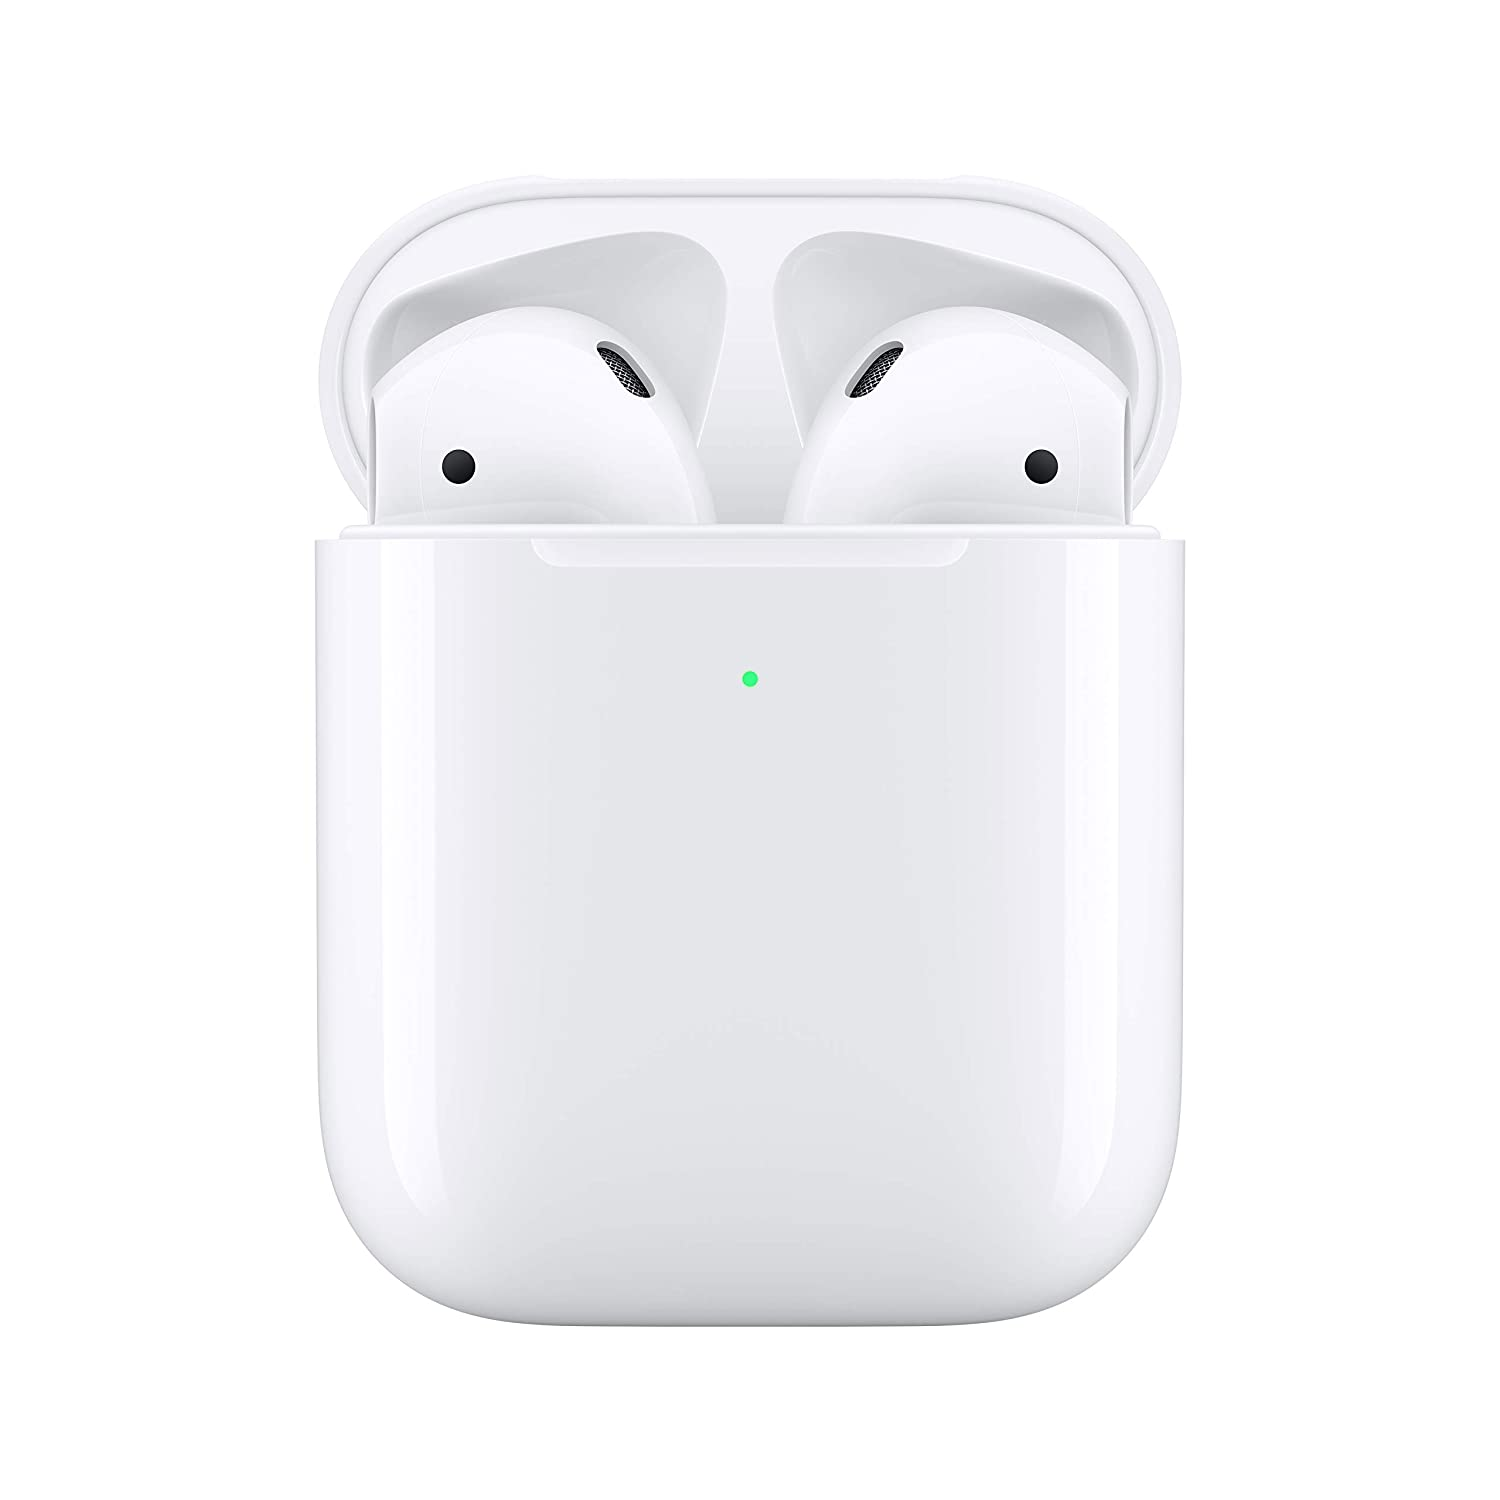 Apple AirPods with Wireless Charging Case Price In India